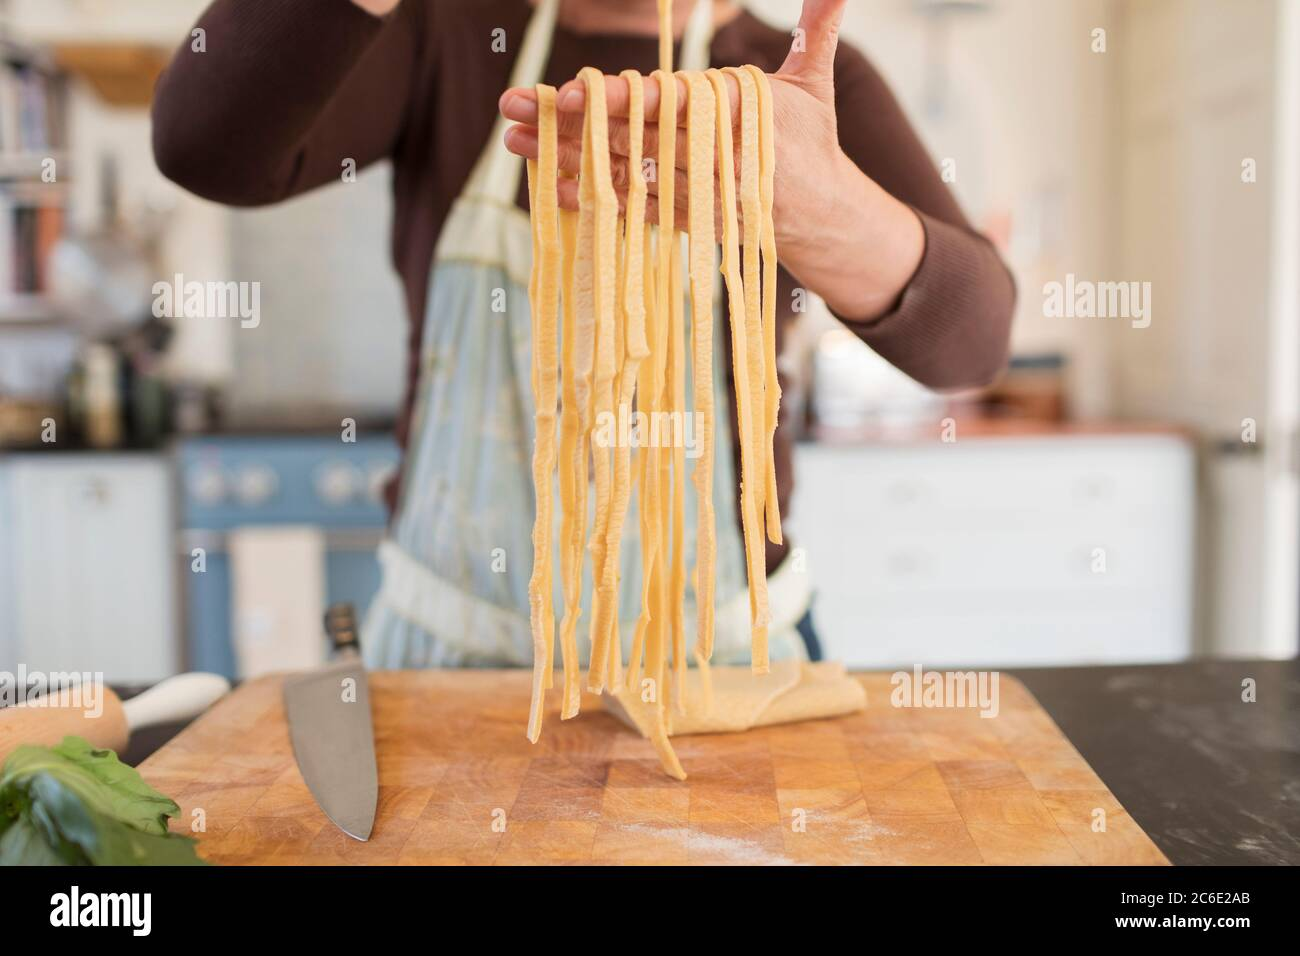 Close up woman making fresh homemade pasta in kitchen Stock Photo